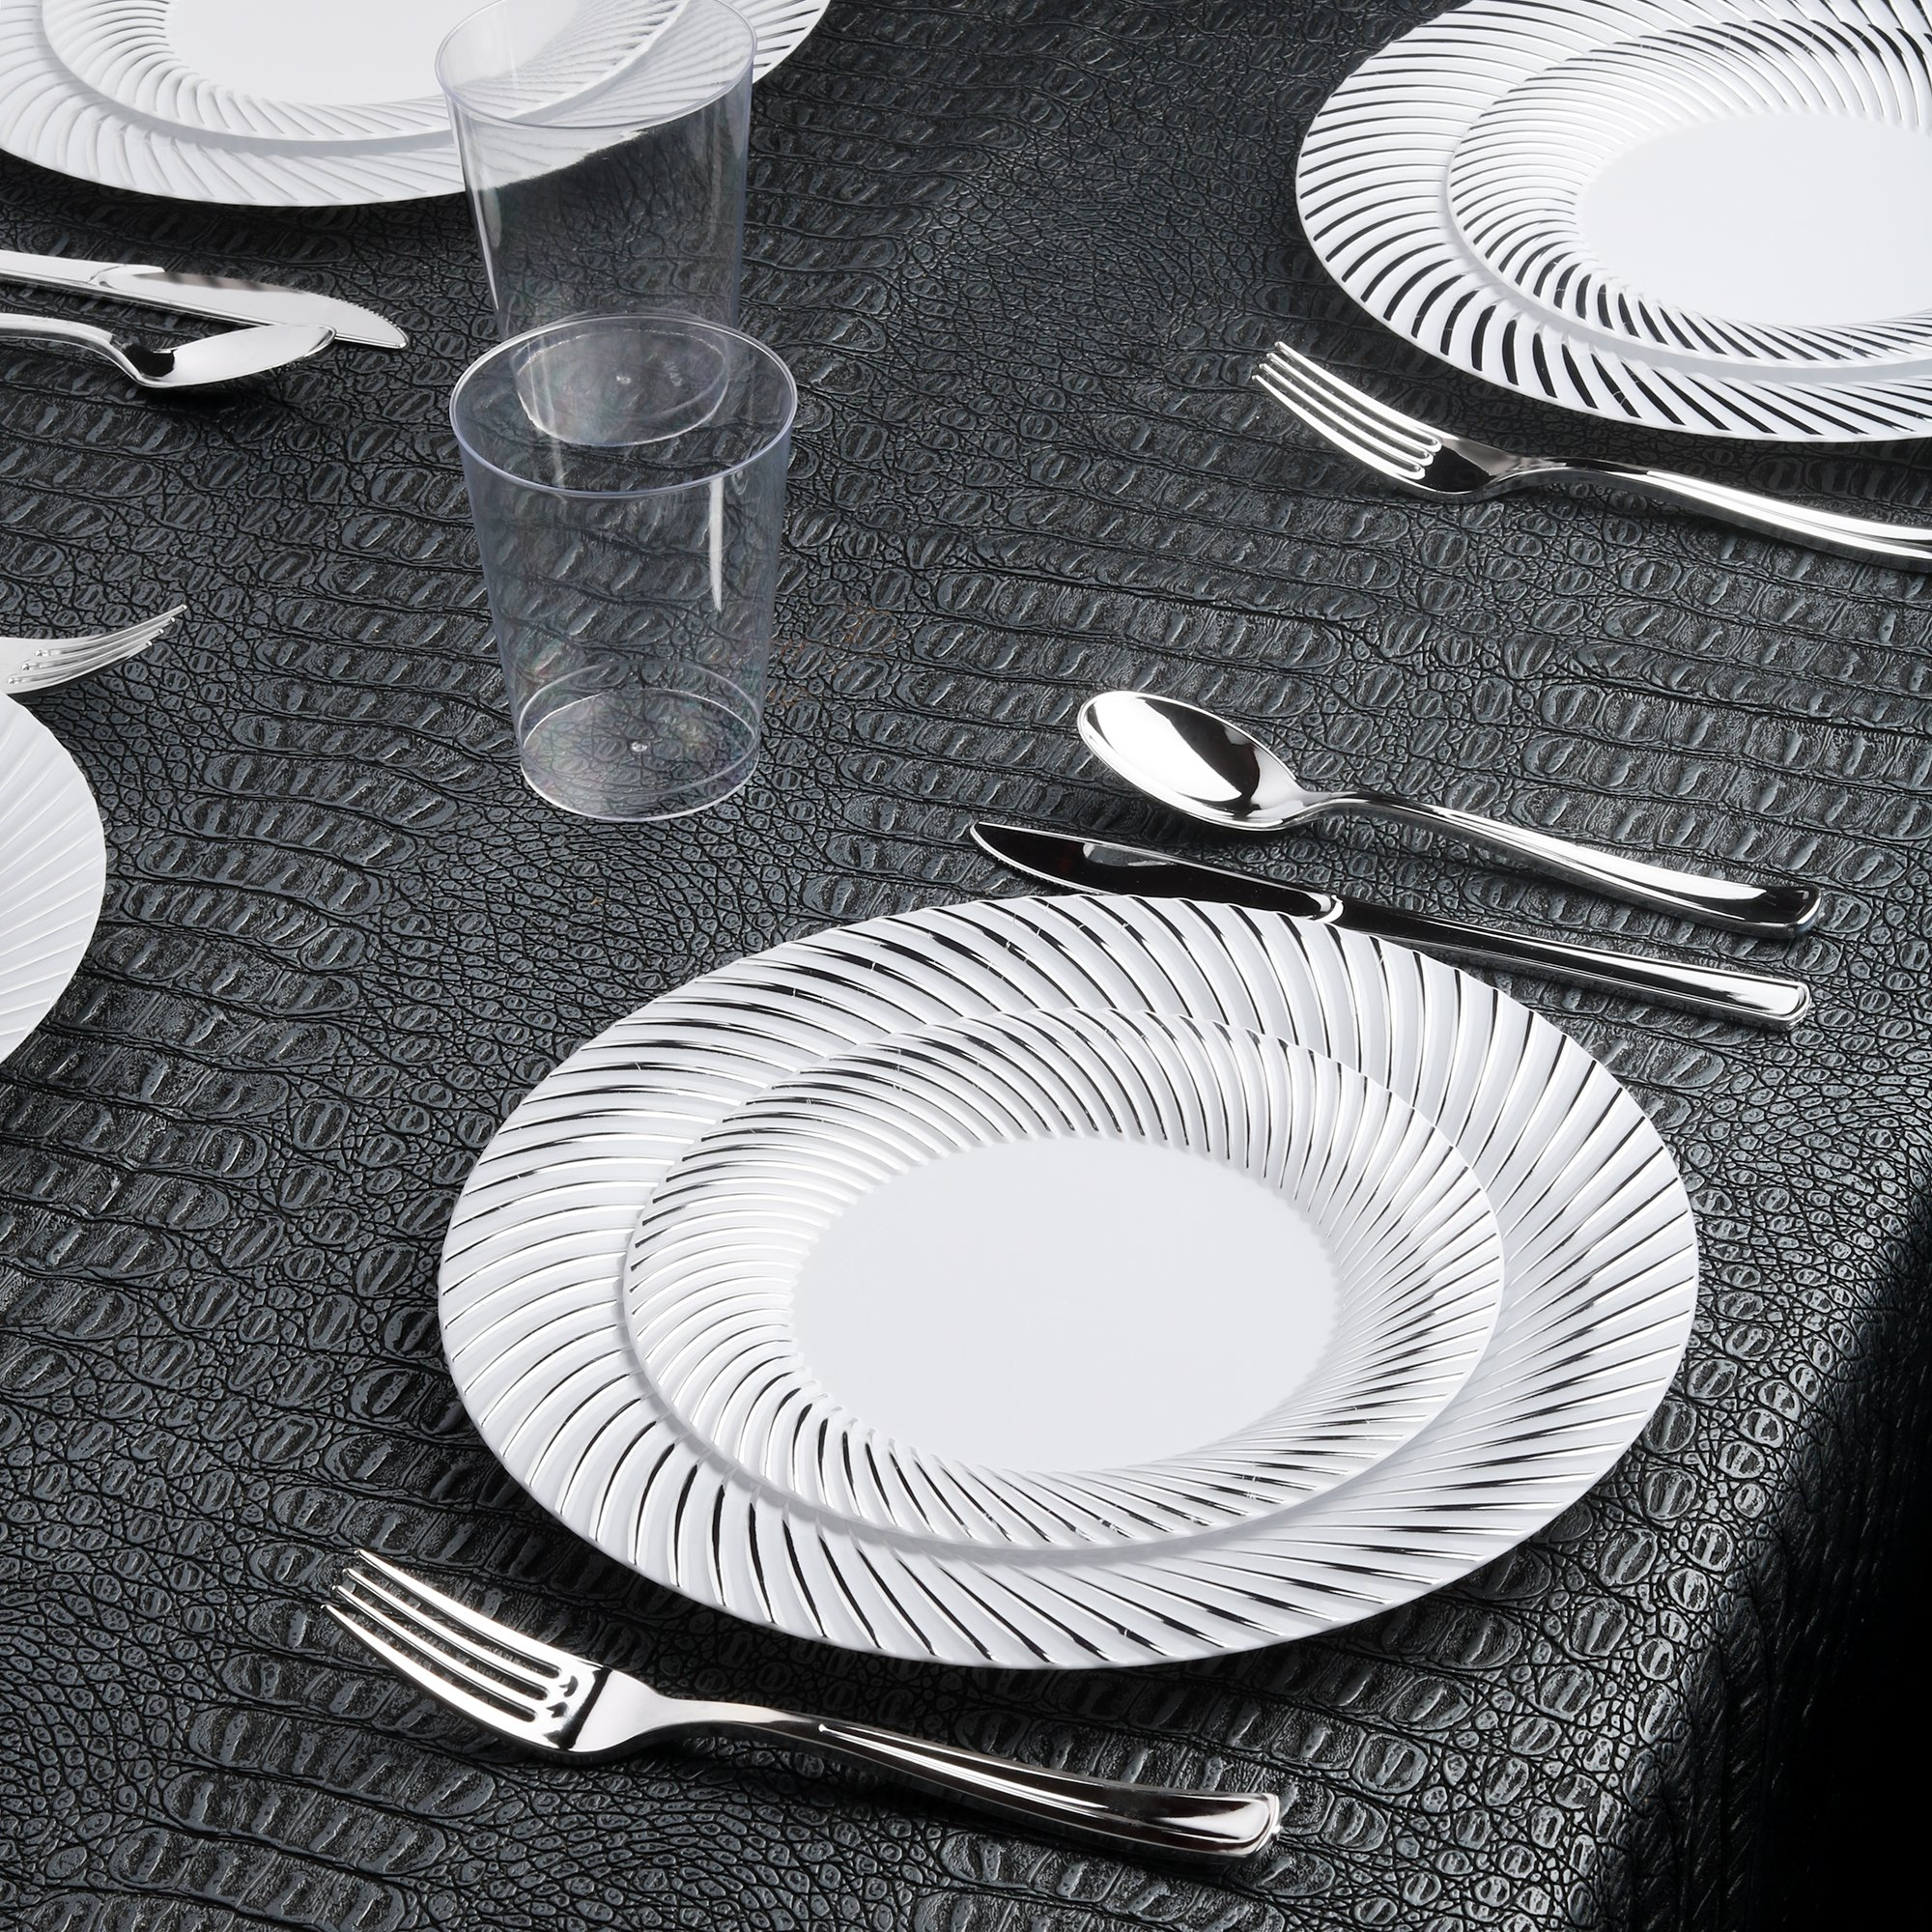 Kaya Collection - Swirl Silver Disposable Plastic Dinnerware Party Package - 60 Person Package - Includes Dinner Plates, Salad/Dessert Plates, Silver Cutlery and Tumblers by Kaya Collection